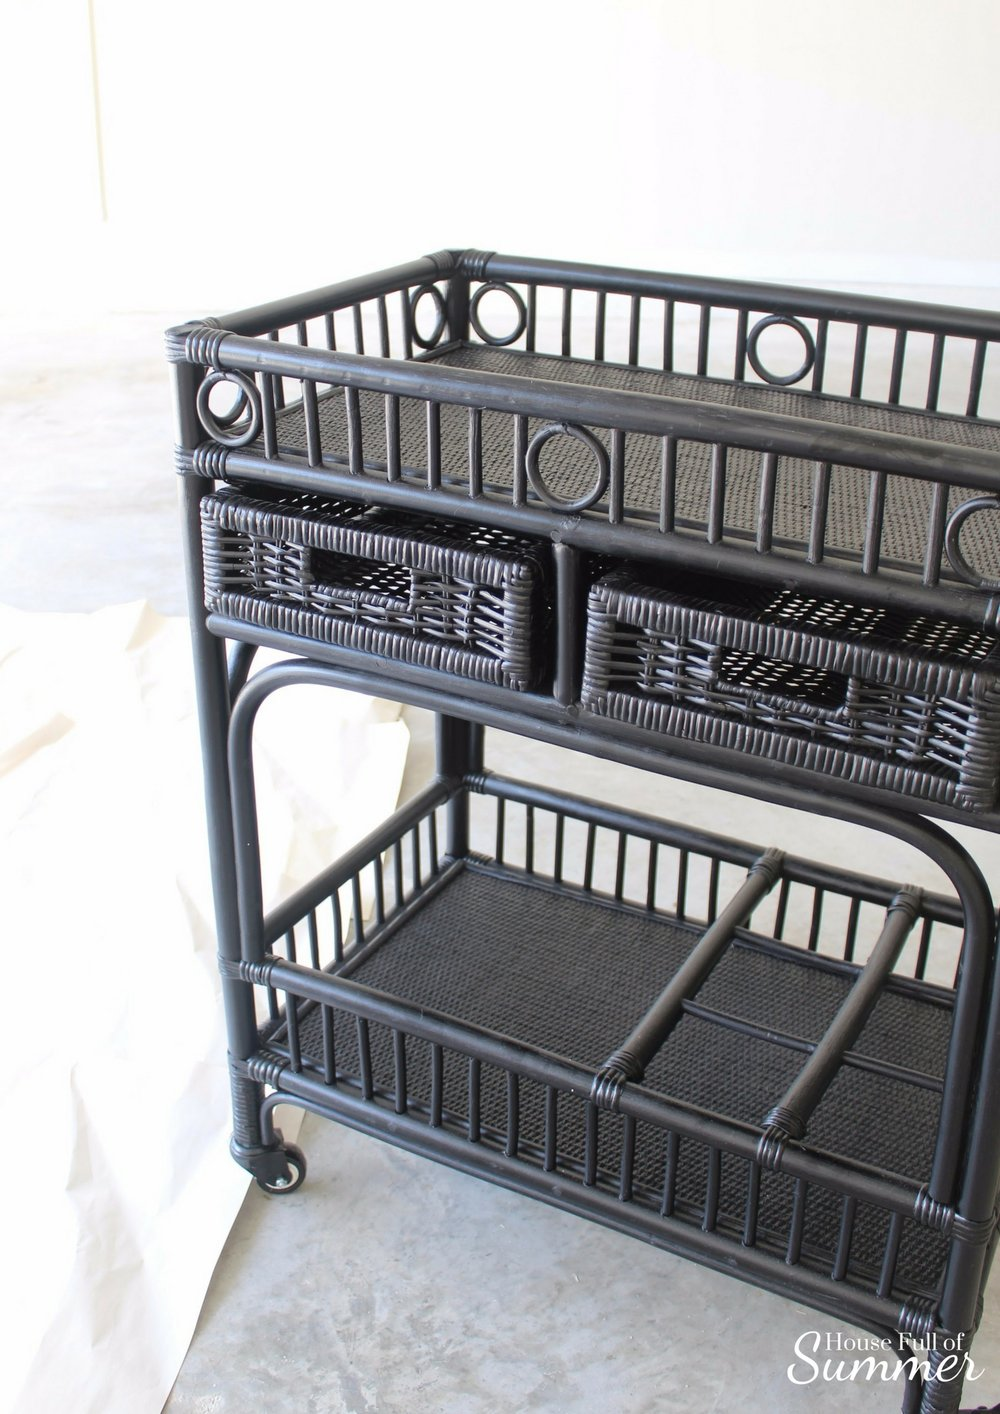 I think this bar cart looks great in black, but it just didn't go with my decor.